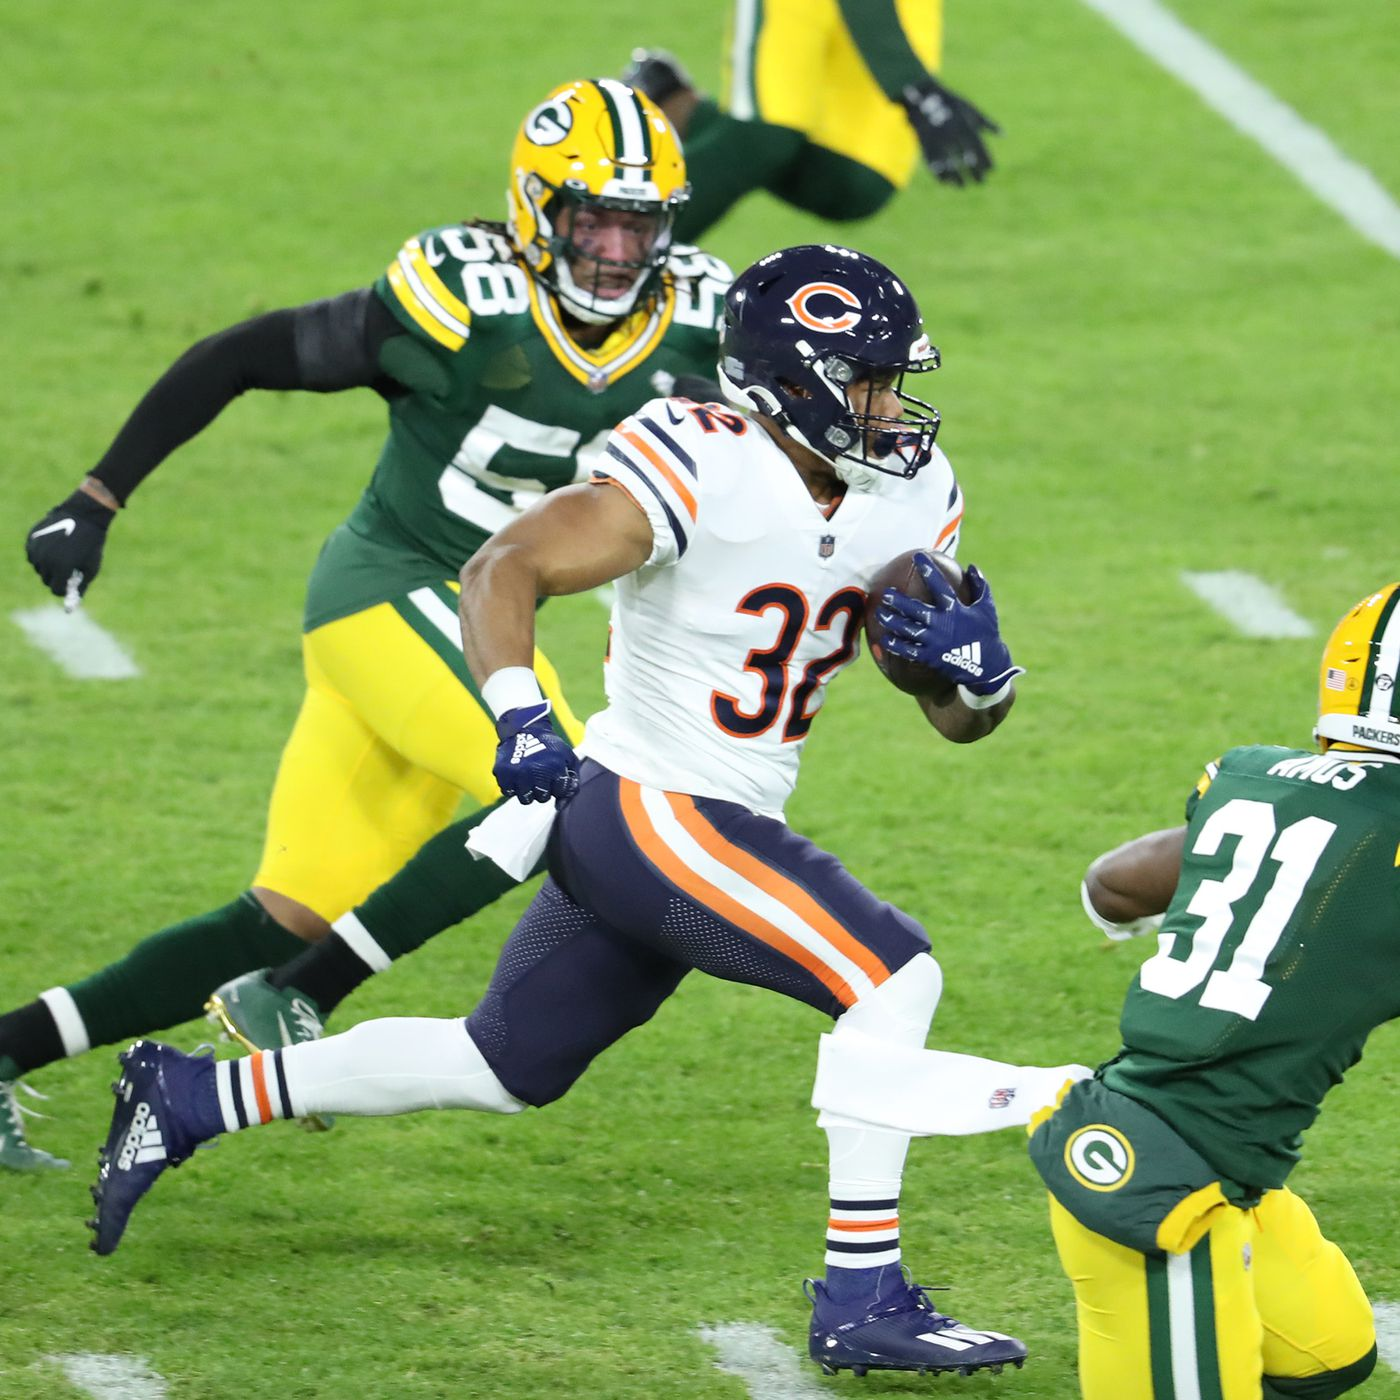 Bears Vs Packers Snap Counts Stats And More Windy City Gridiron